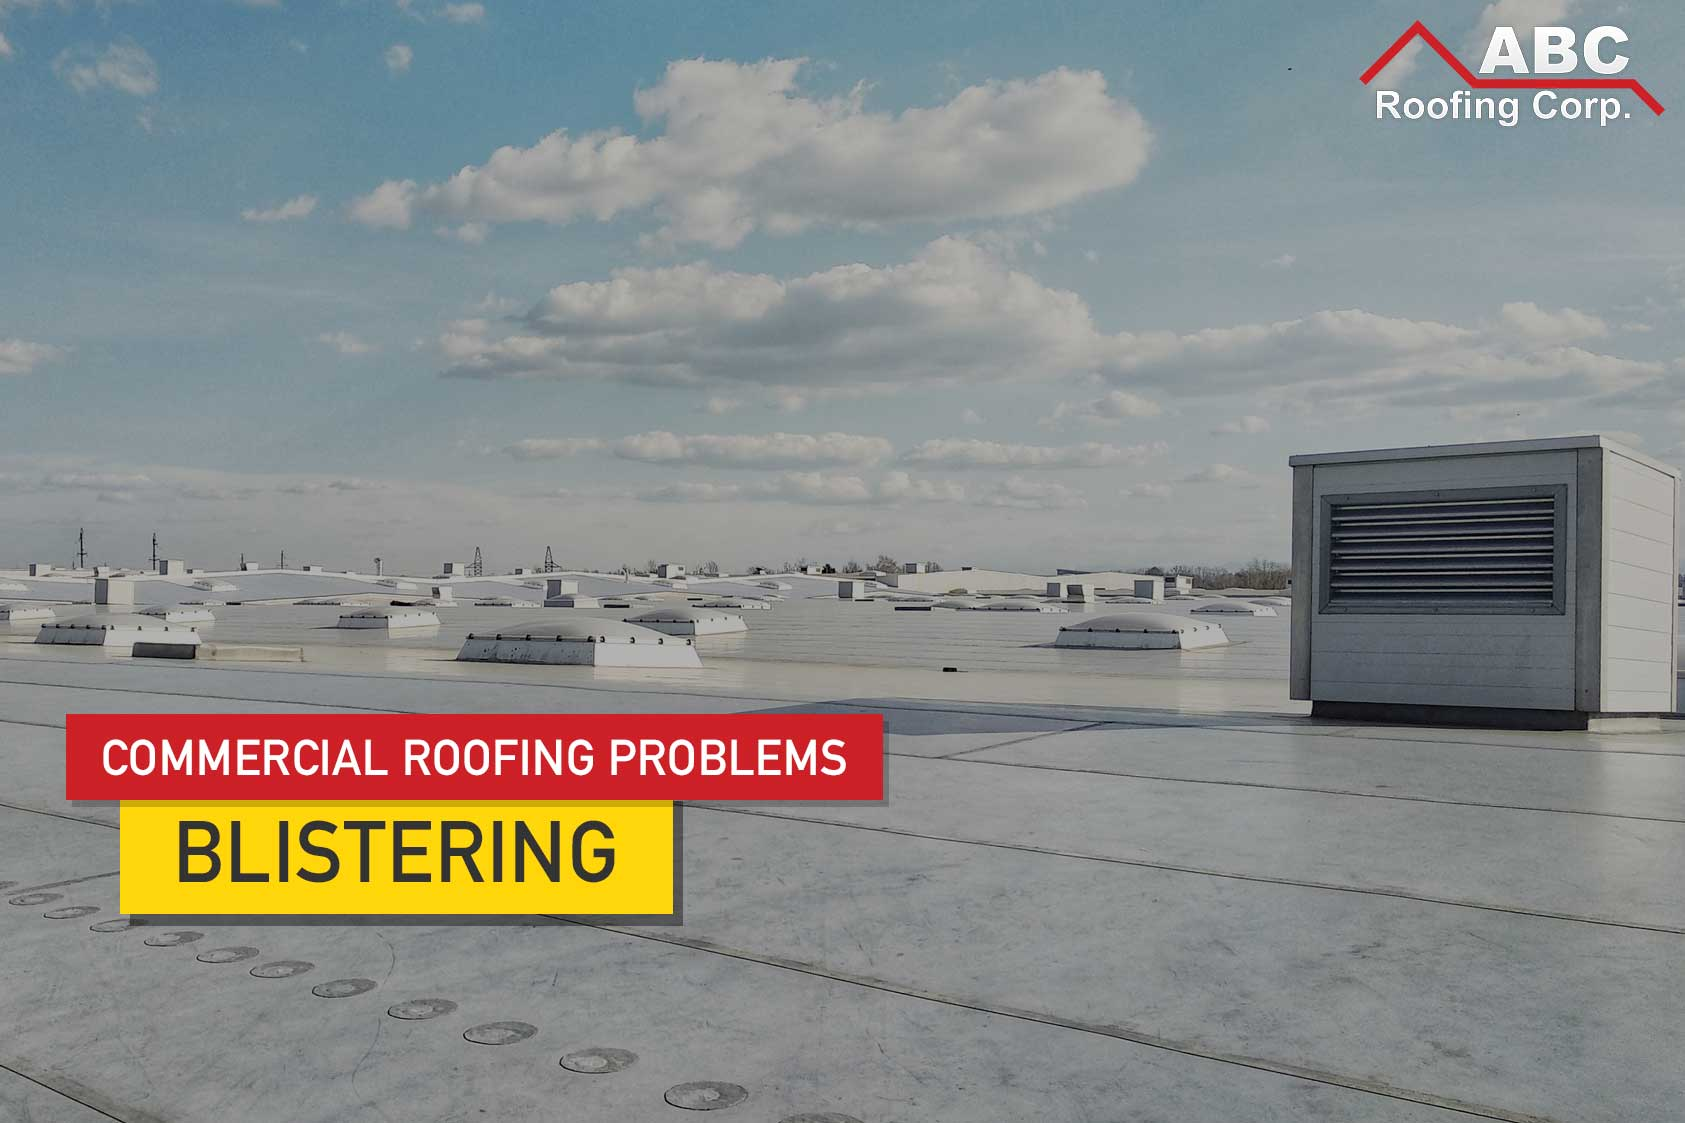 Commercial Roofing Problems: Blistering